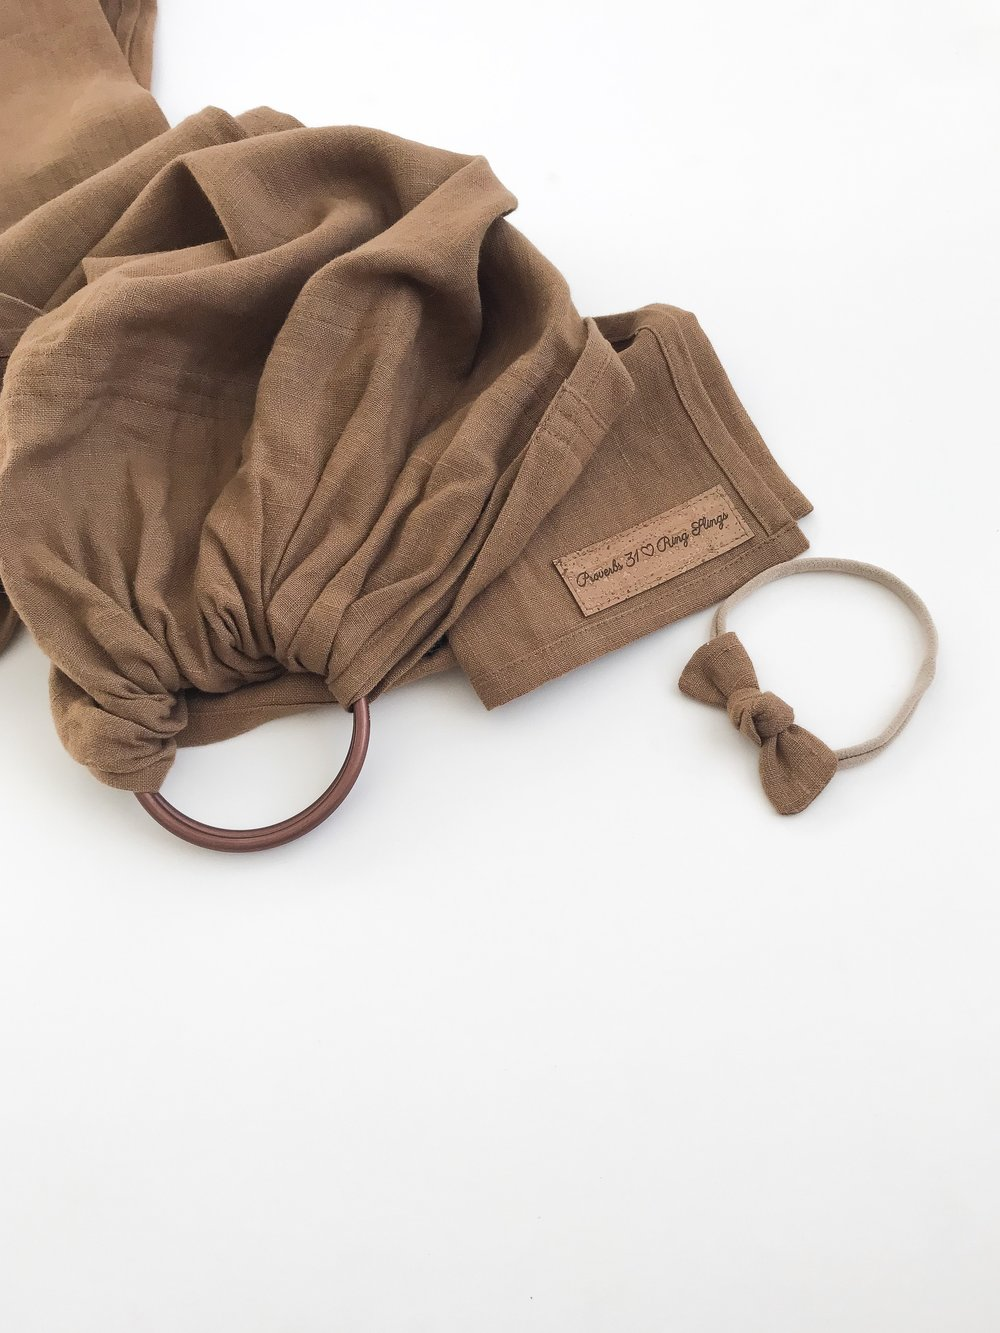 WBC + Proverbs 31 Heart Ring SlingsCollaboration - This album contains items that perfectly match ring slings from our favorite ring sling company: Proverbs 31 Heart Ring Slings.